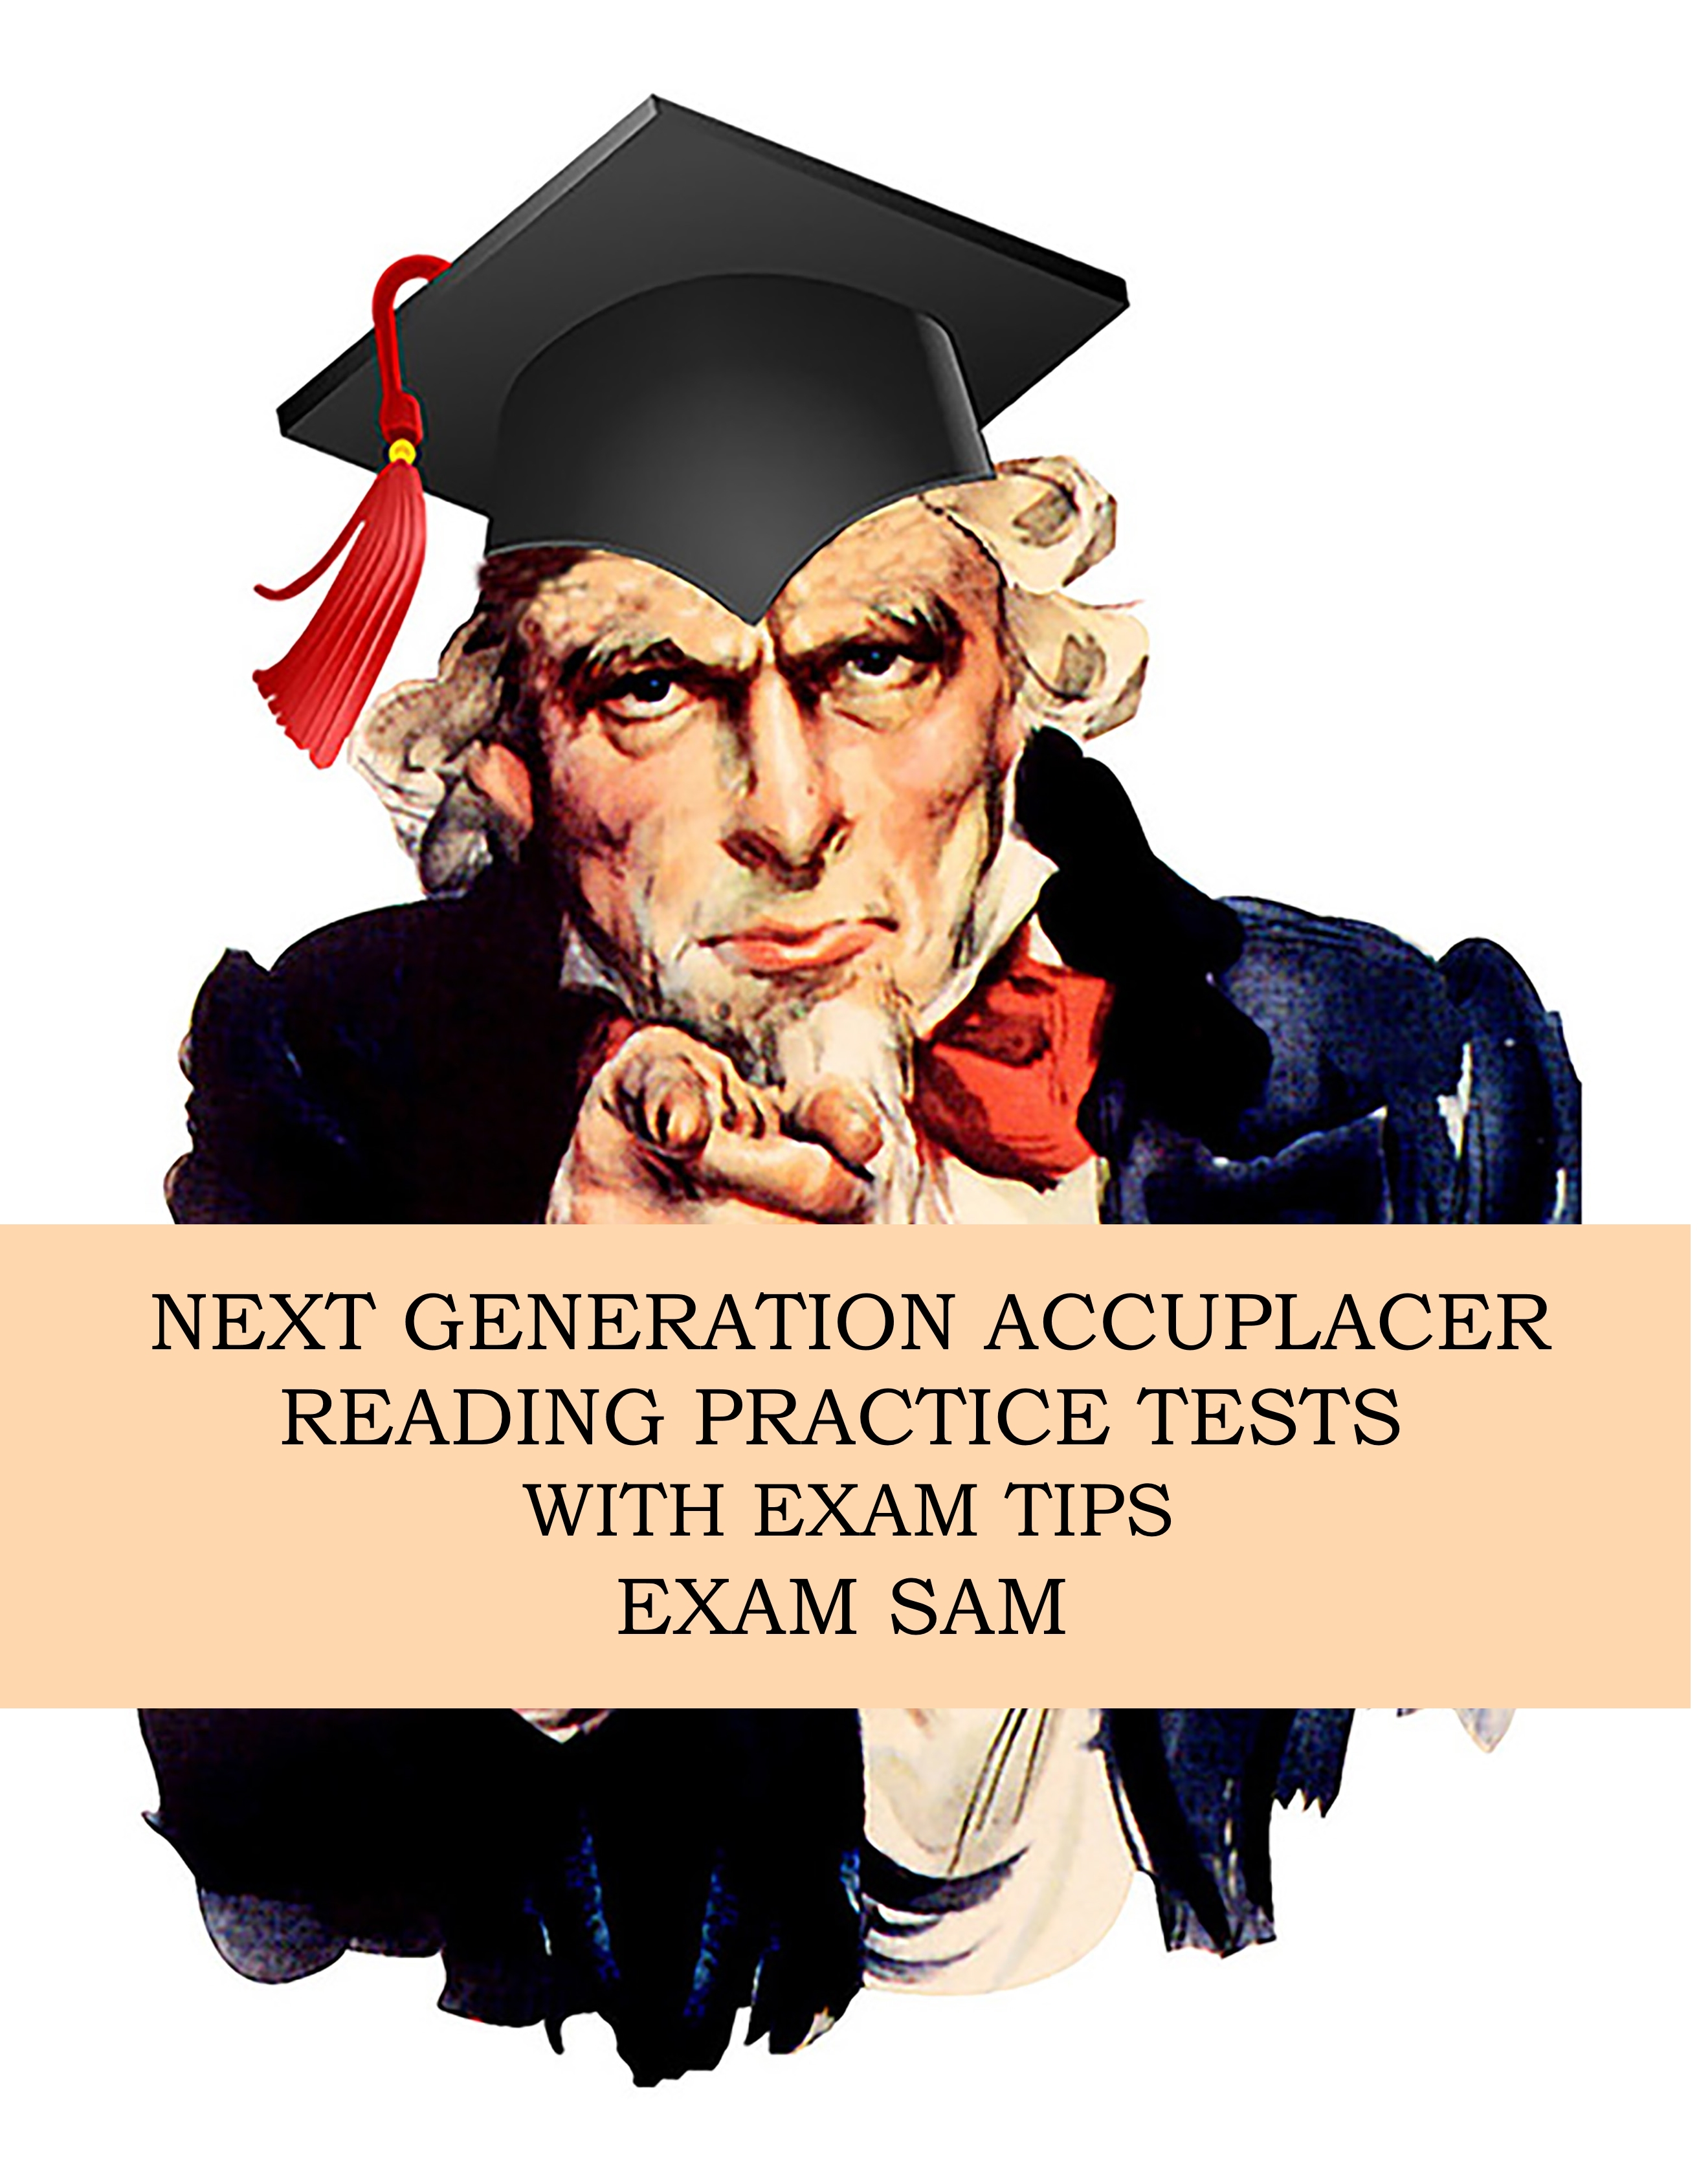 Accuplacer Book by Exam SAM - Get Ready for Your Exam!